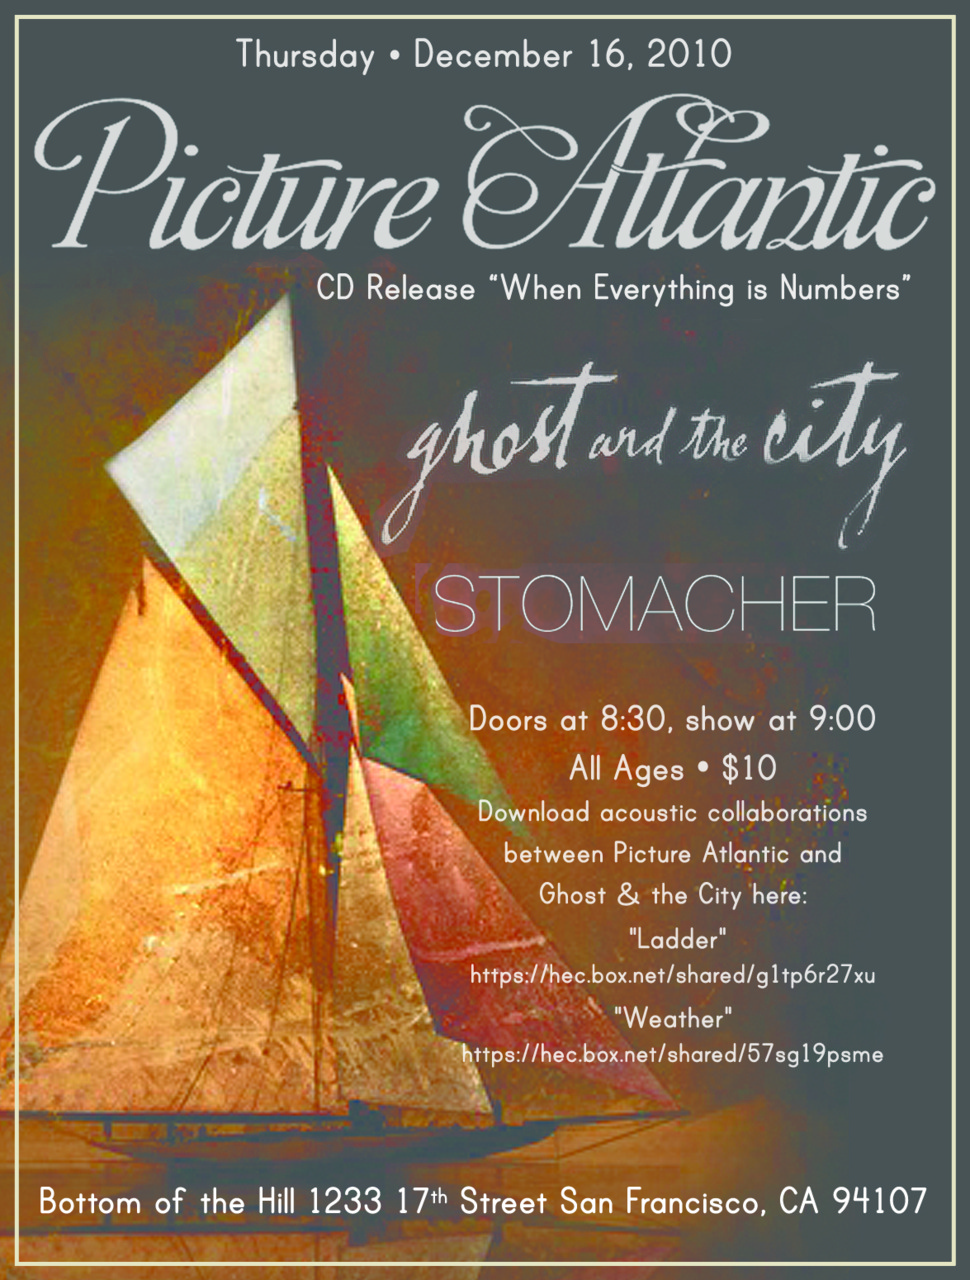 This Thursday, December 16th 2010 - Picture Atlantic CD Release show w/ Ghost and The City, and Stomacher.   Information above.